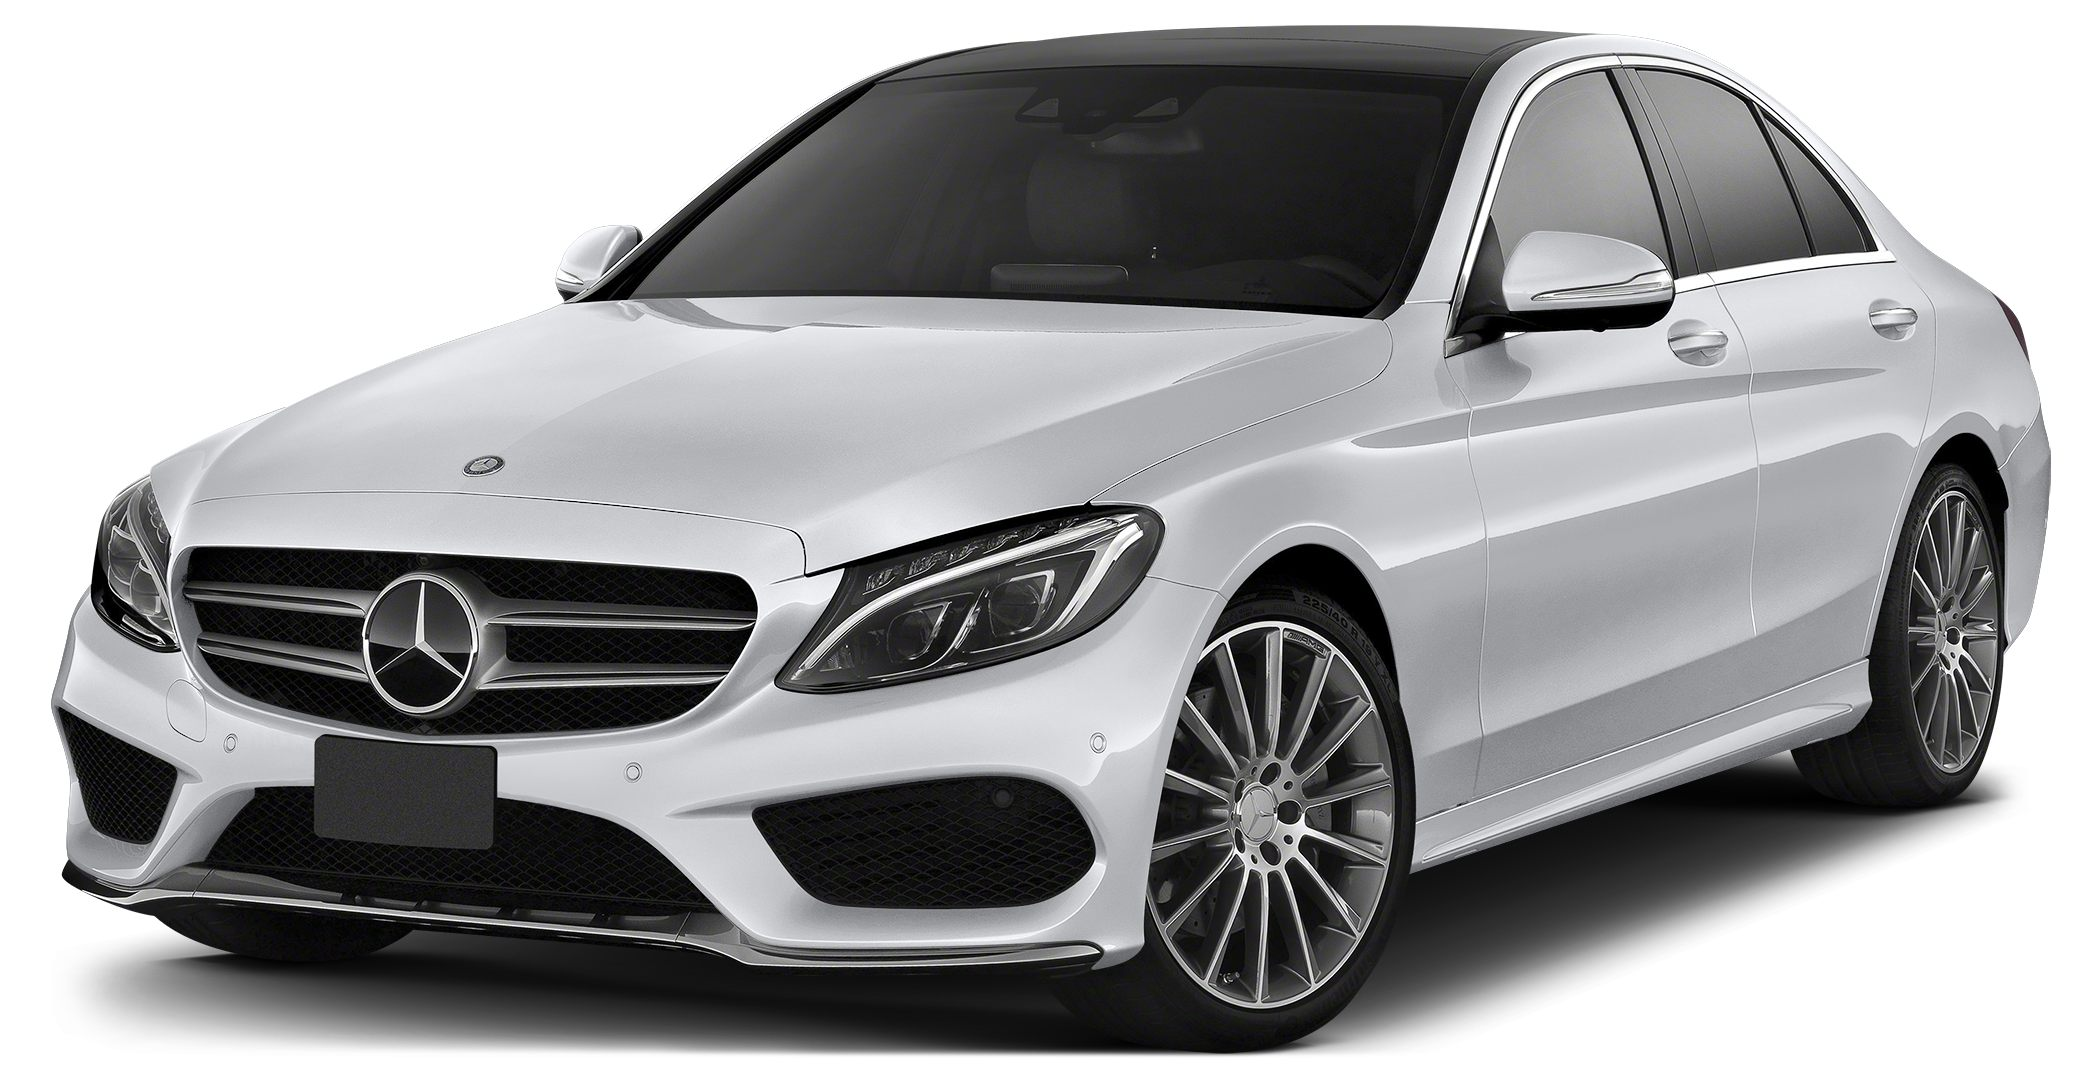 2015 MERCEDES C-Class C300 4MATIC This 2015 C300W4 is a low mileage MBUSA employee lease unit now